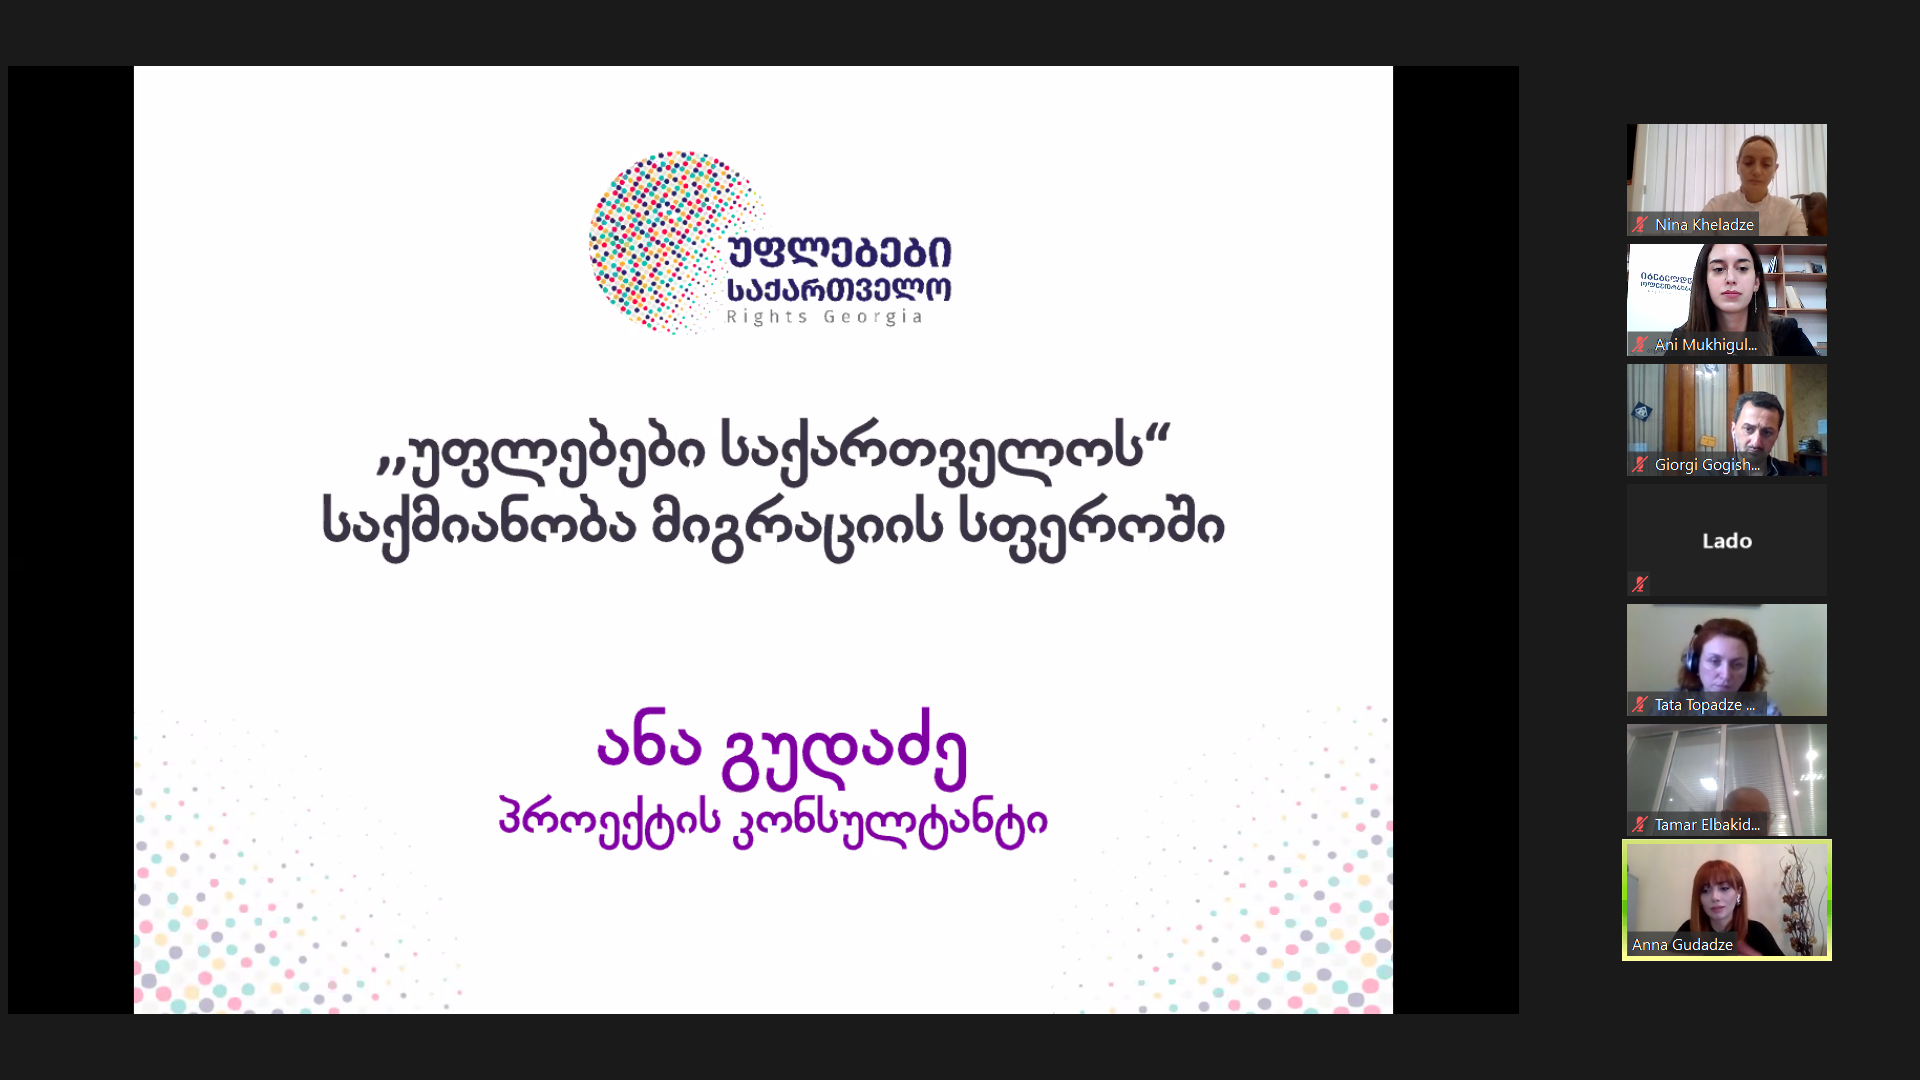 Advocacy Network for Migration Issues (ANMI) To Be Established